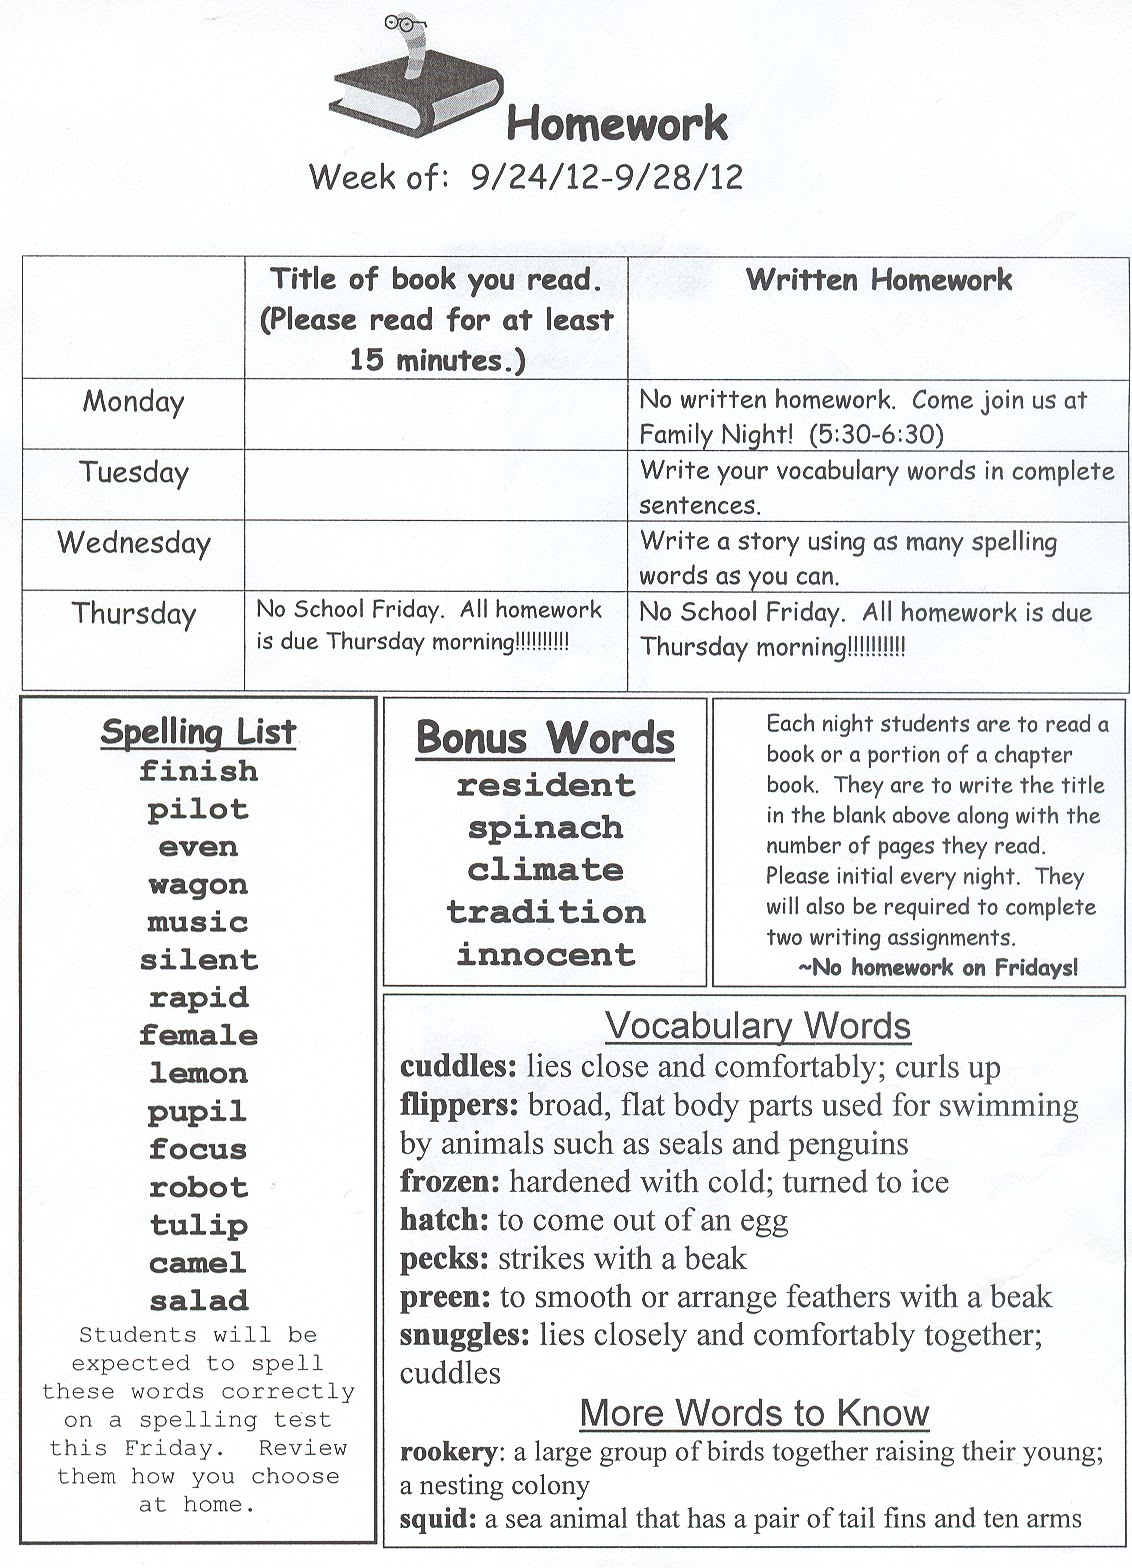 weekly homework packets guide summer homework packets for 4th graders